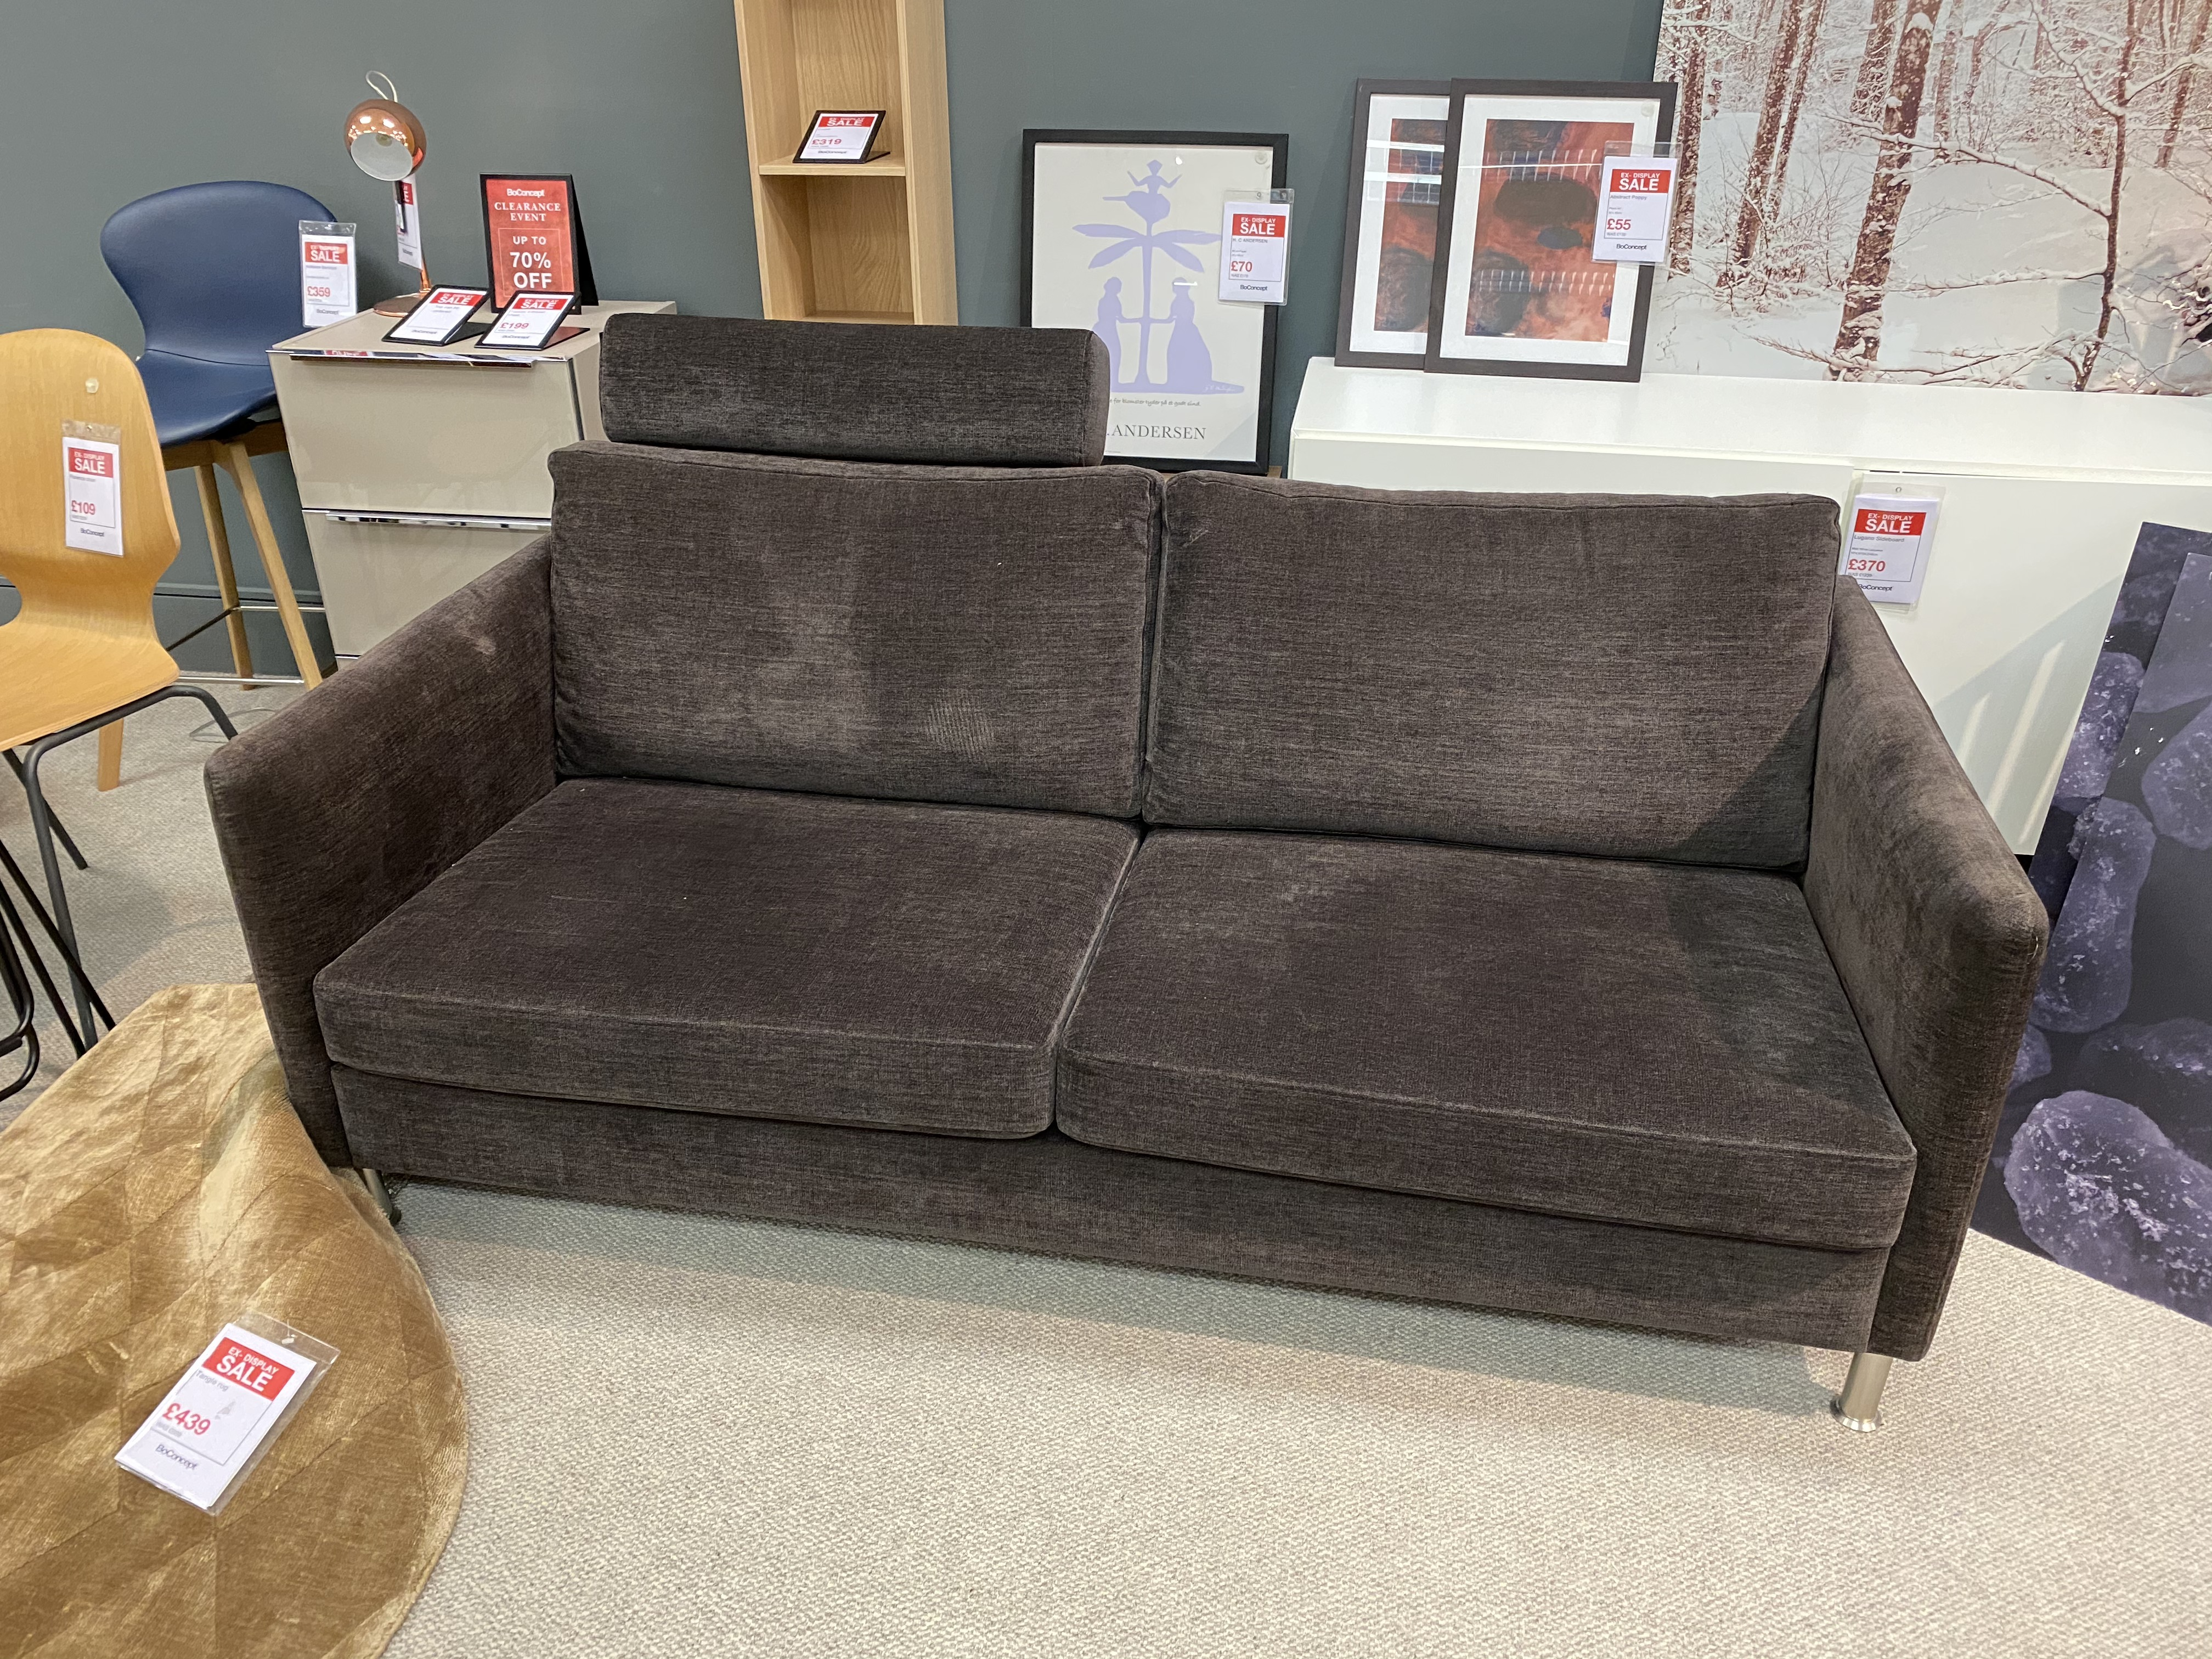 Indivi 2.5 seater sofa with headrest